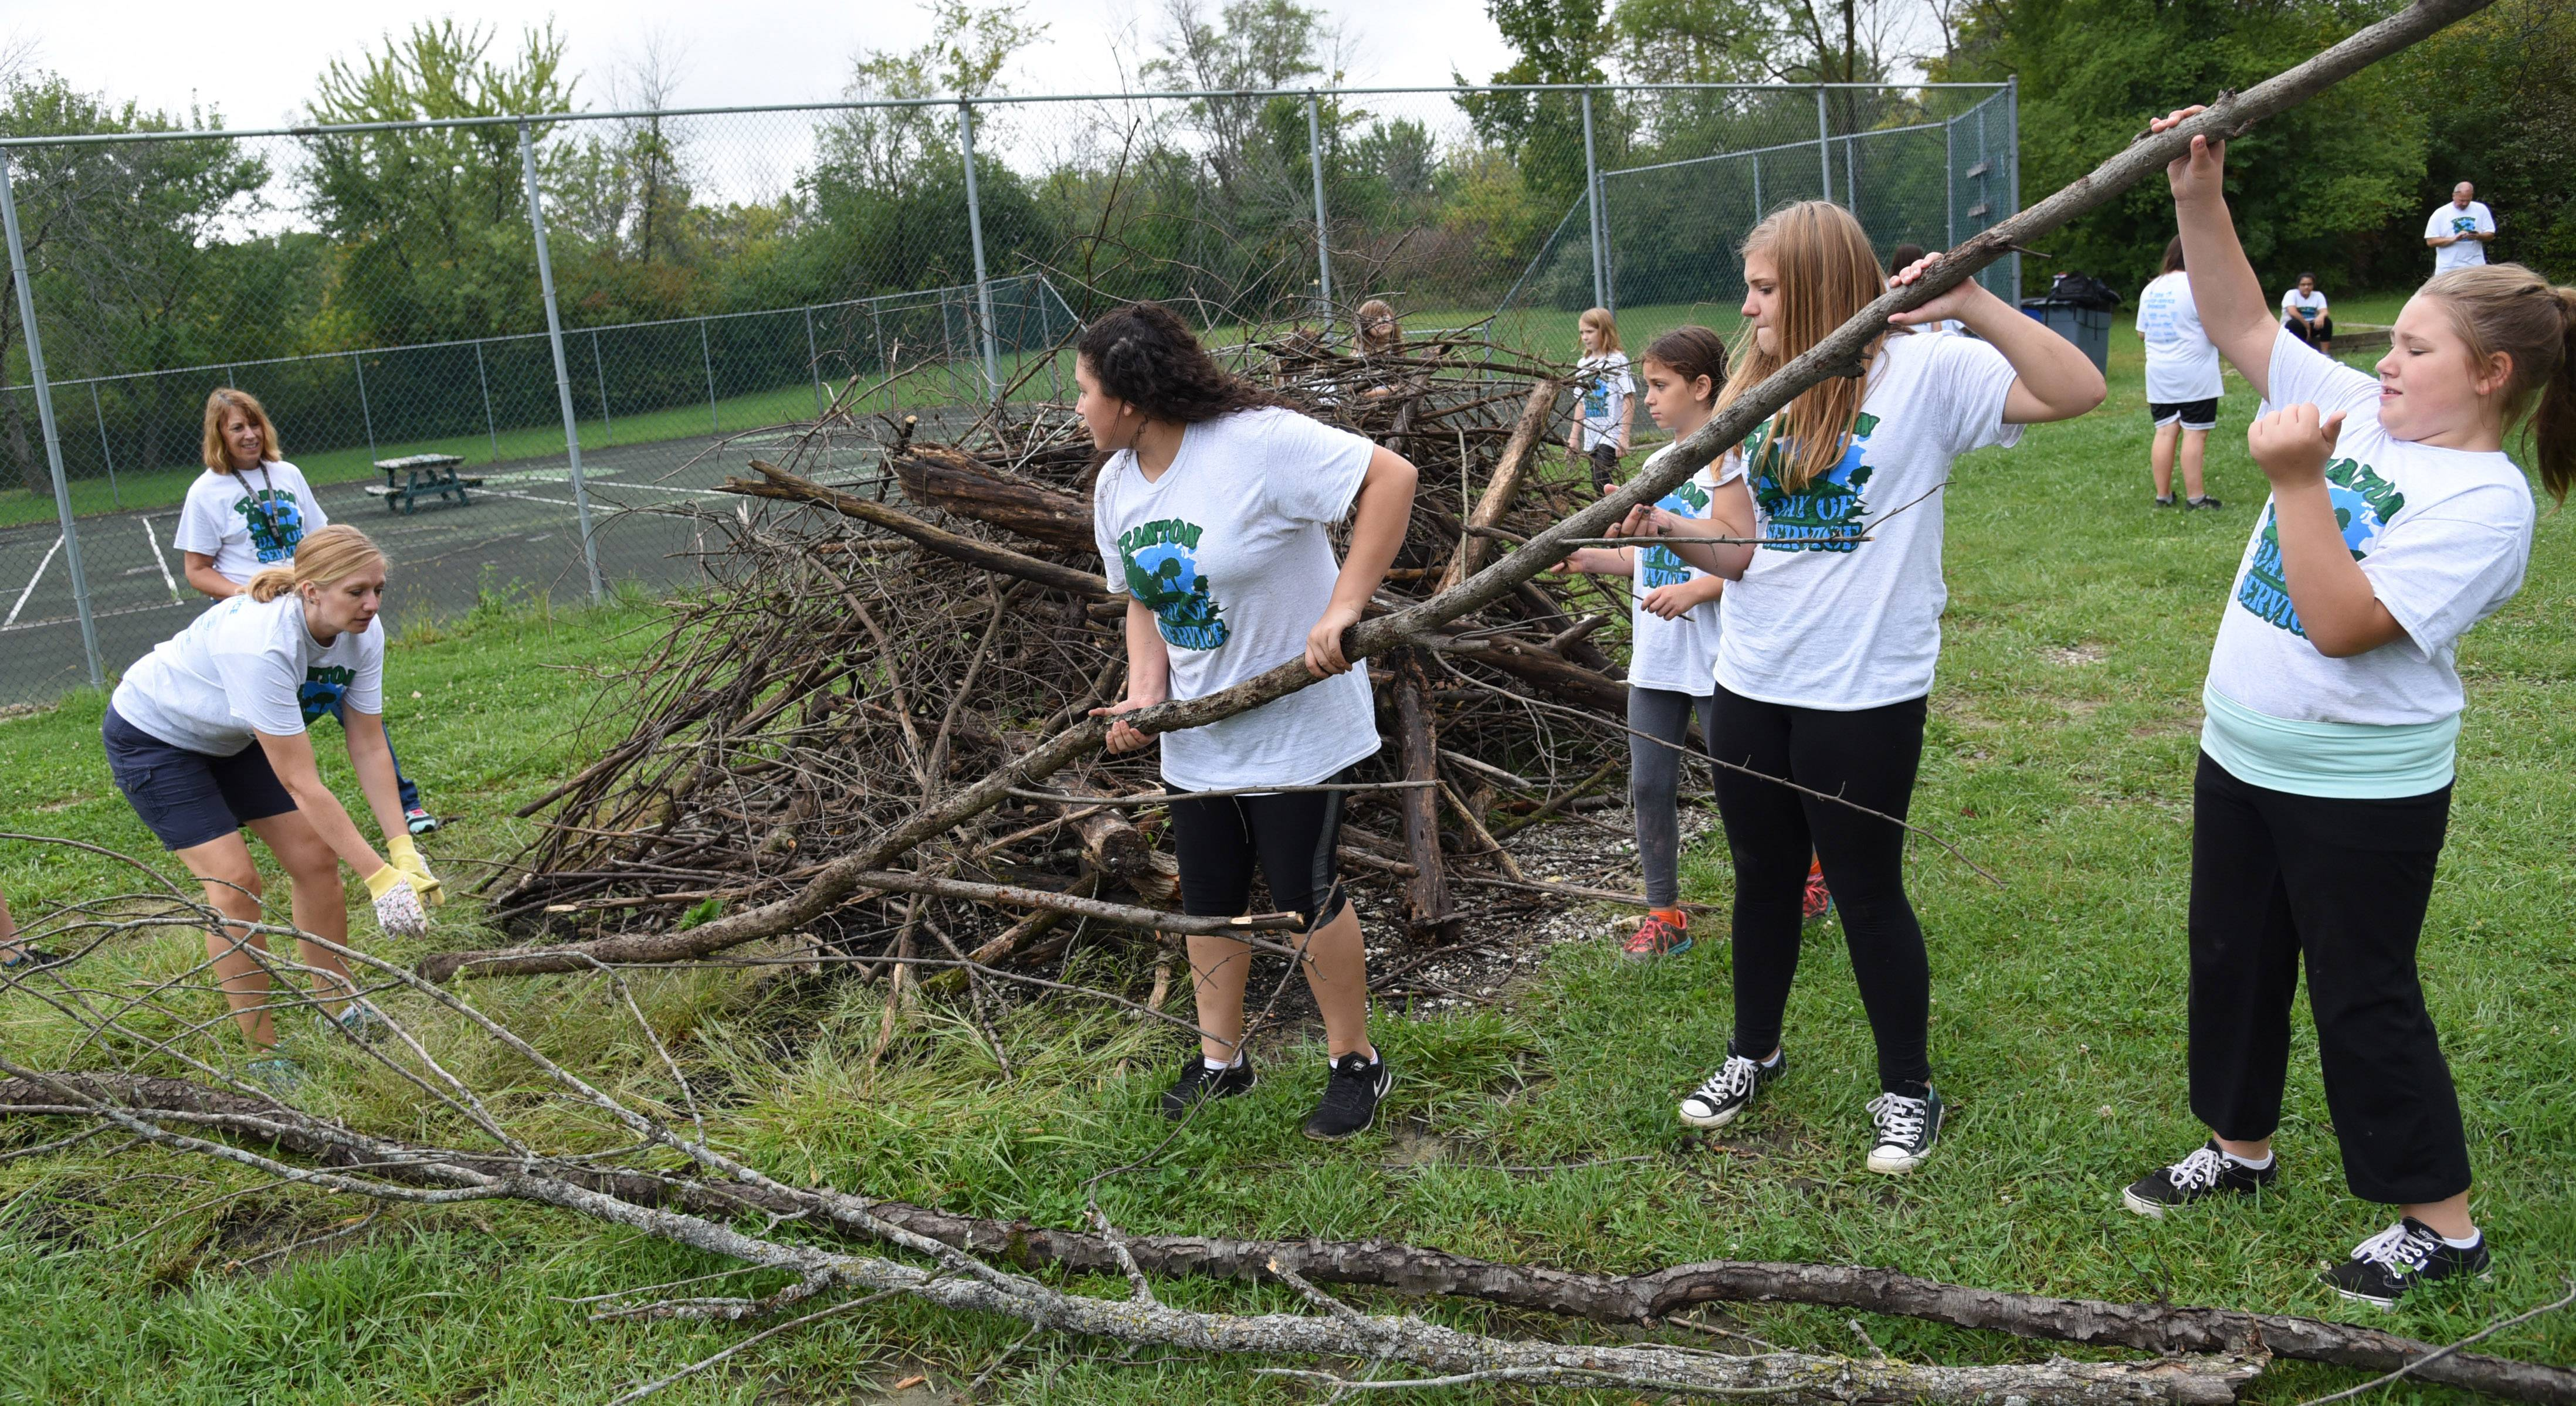 Nineteen students and three teachers from Stanton School in Fox Lake cleared hiking paths of sticks and debris Friday at Camp Henry Horner in Ingleside as part of the school's annual Day of Service project in the community.